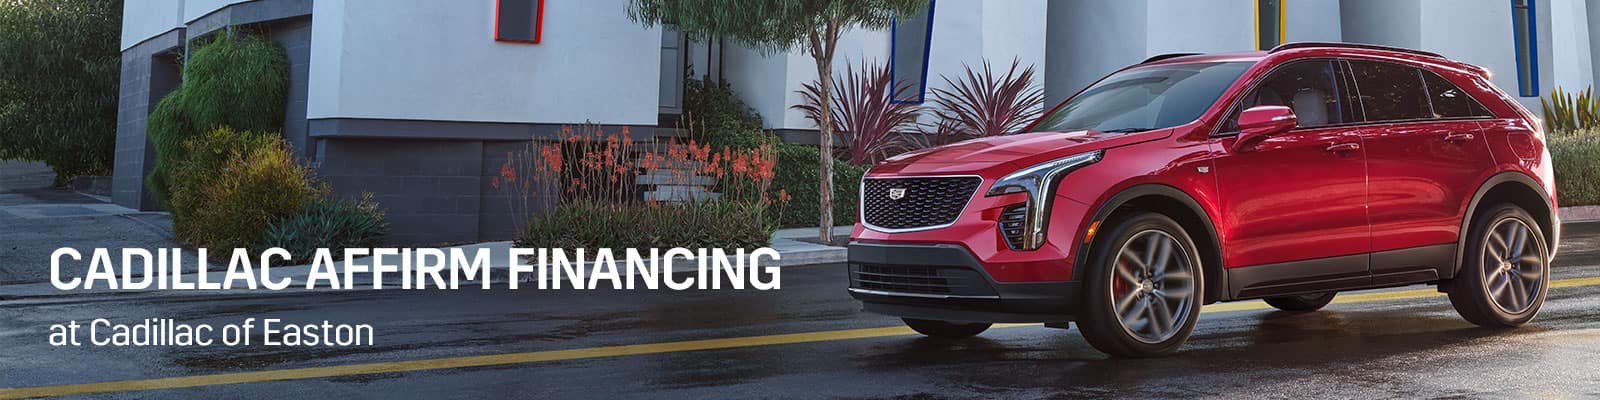 Affirm Service Financing - Germain Cadillac of Easton